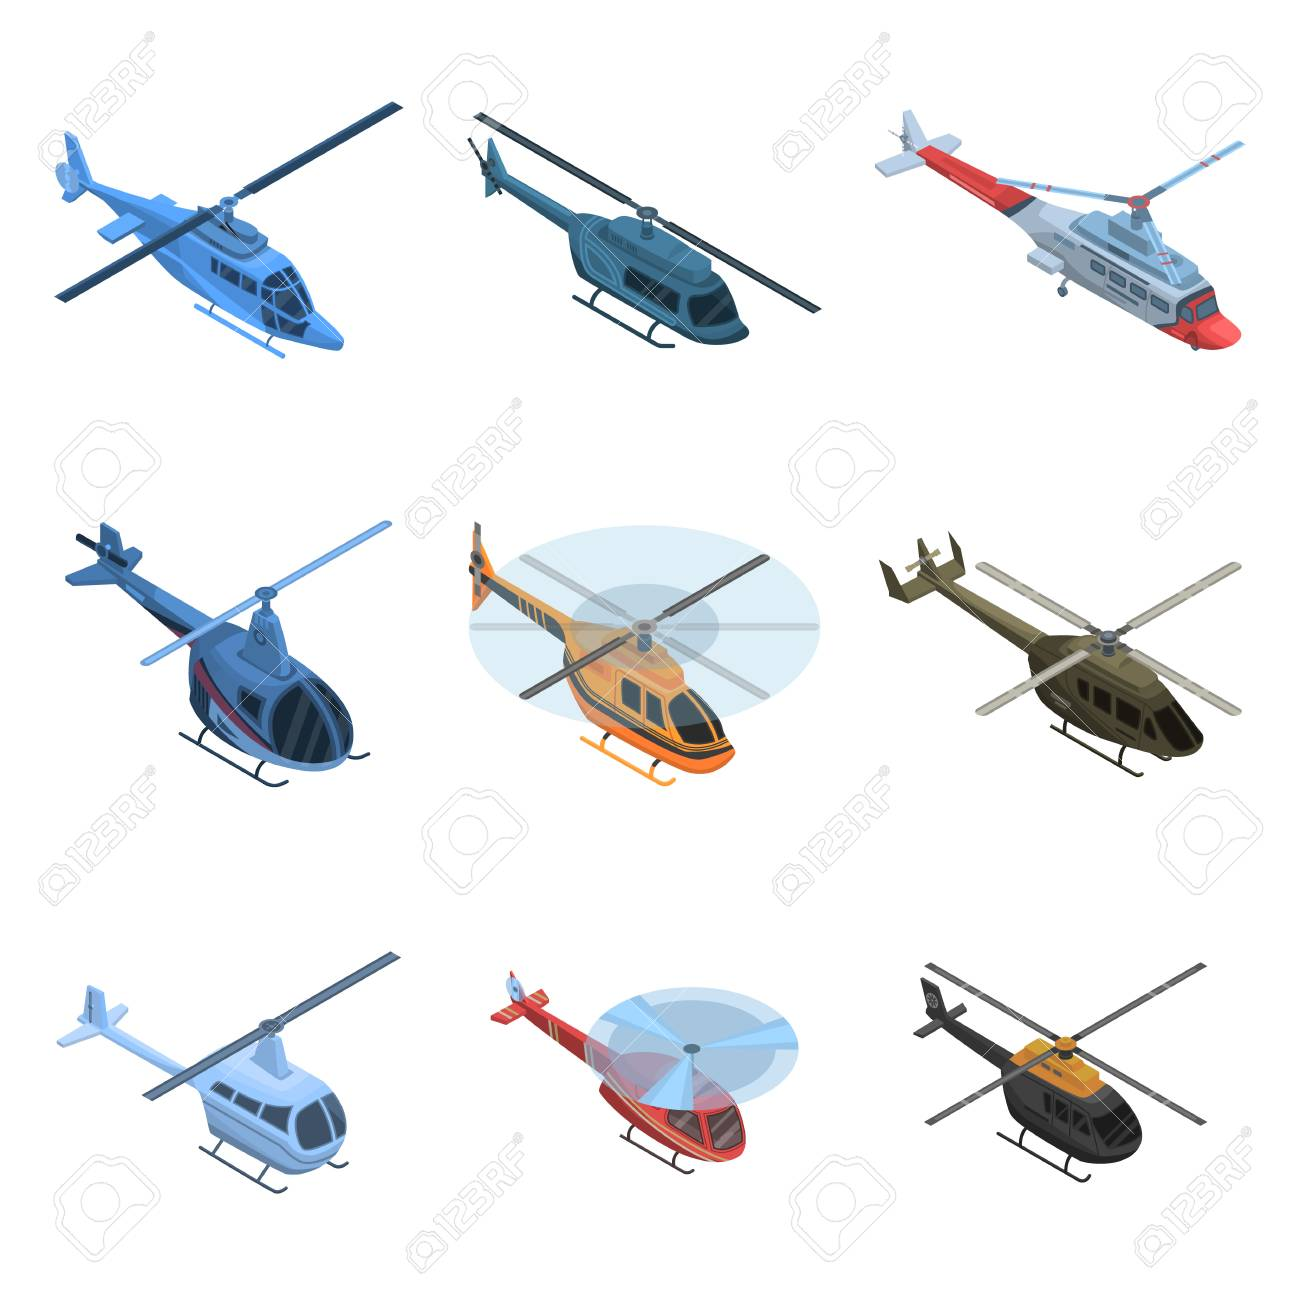 helicopter icon set isometric set of helicopter vector icons royalty free cliparts vectors and stock illustration image 113742036 helicopter icon set isometric set of helicopter vector icons